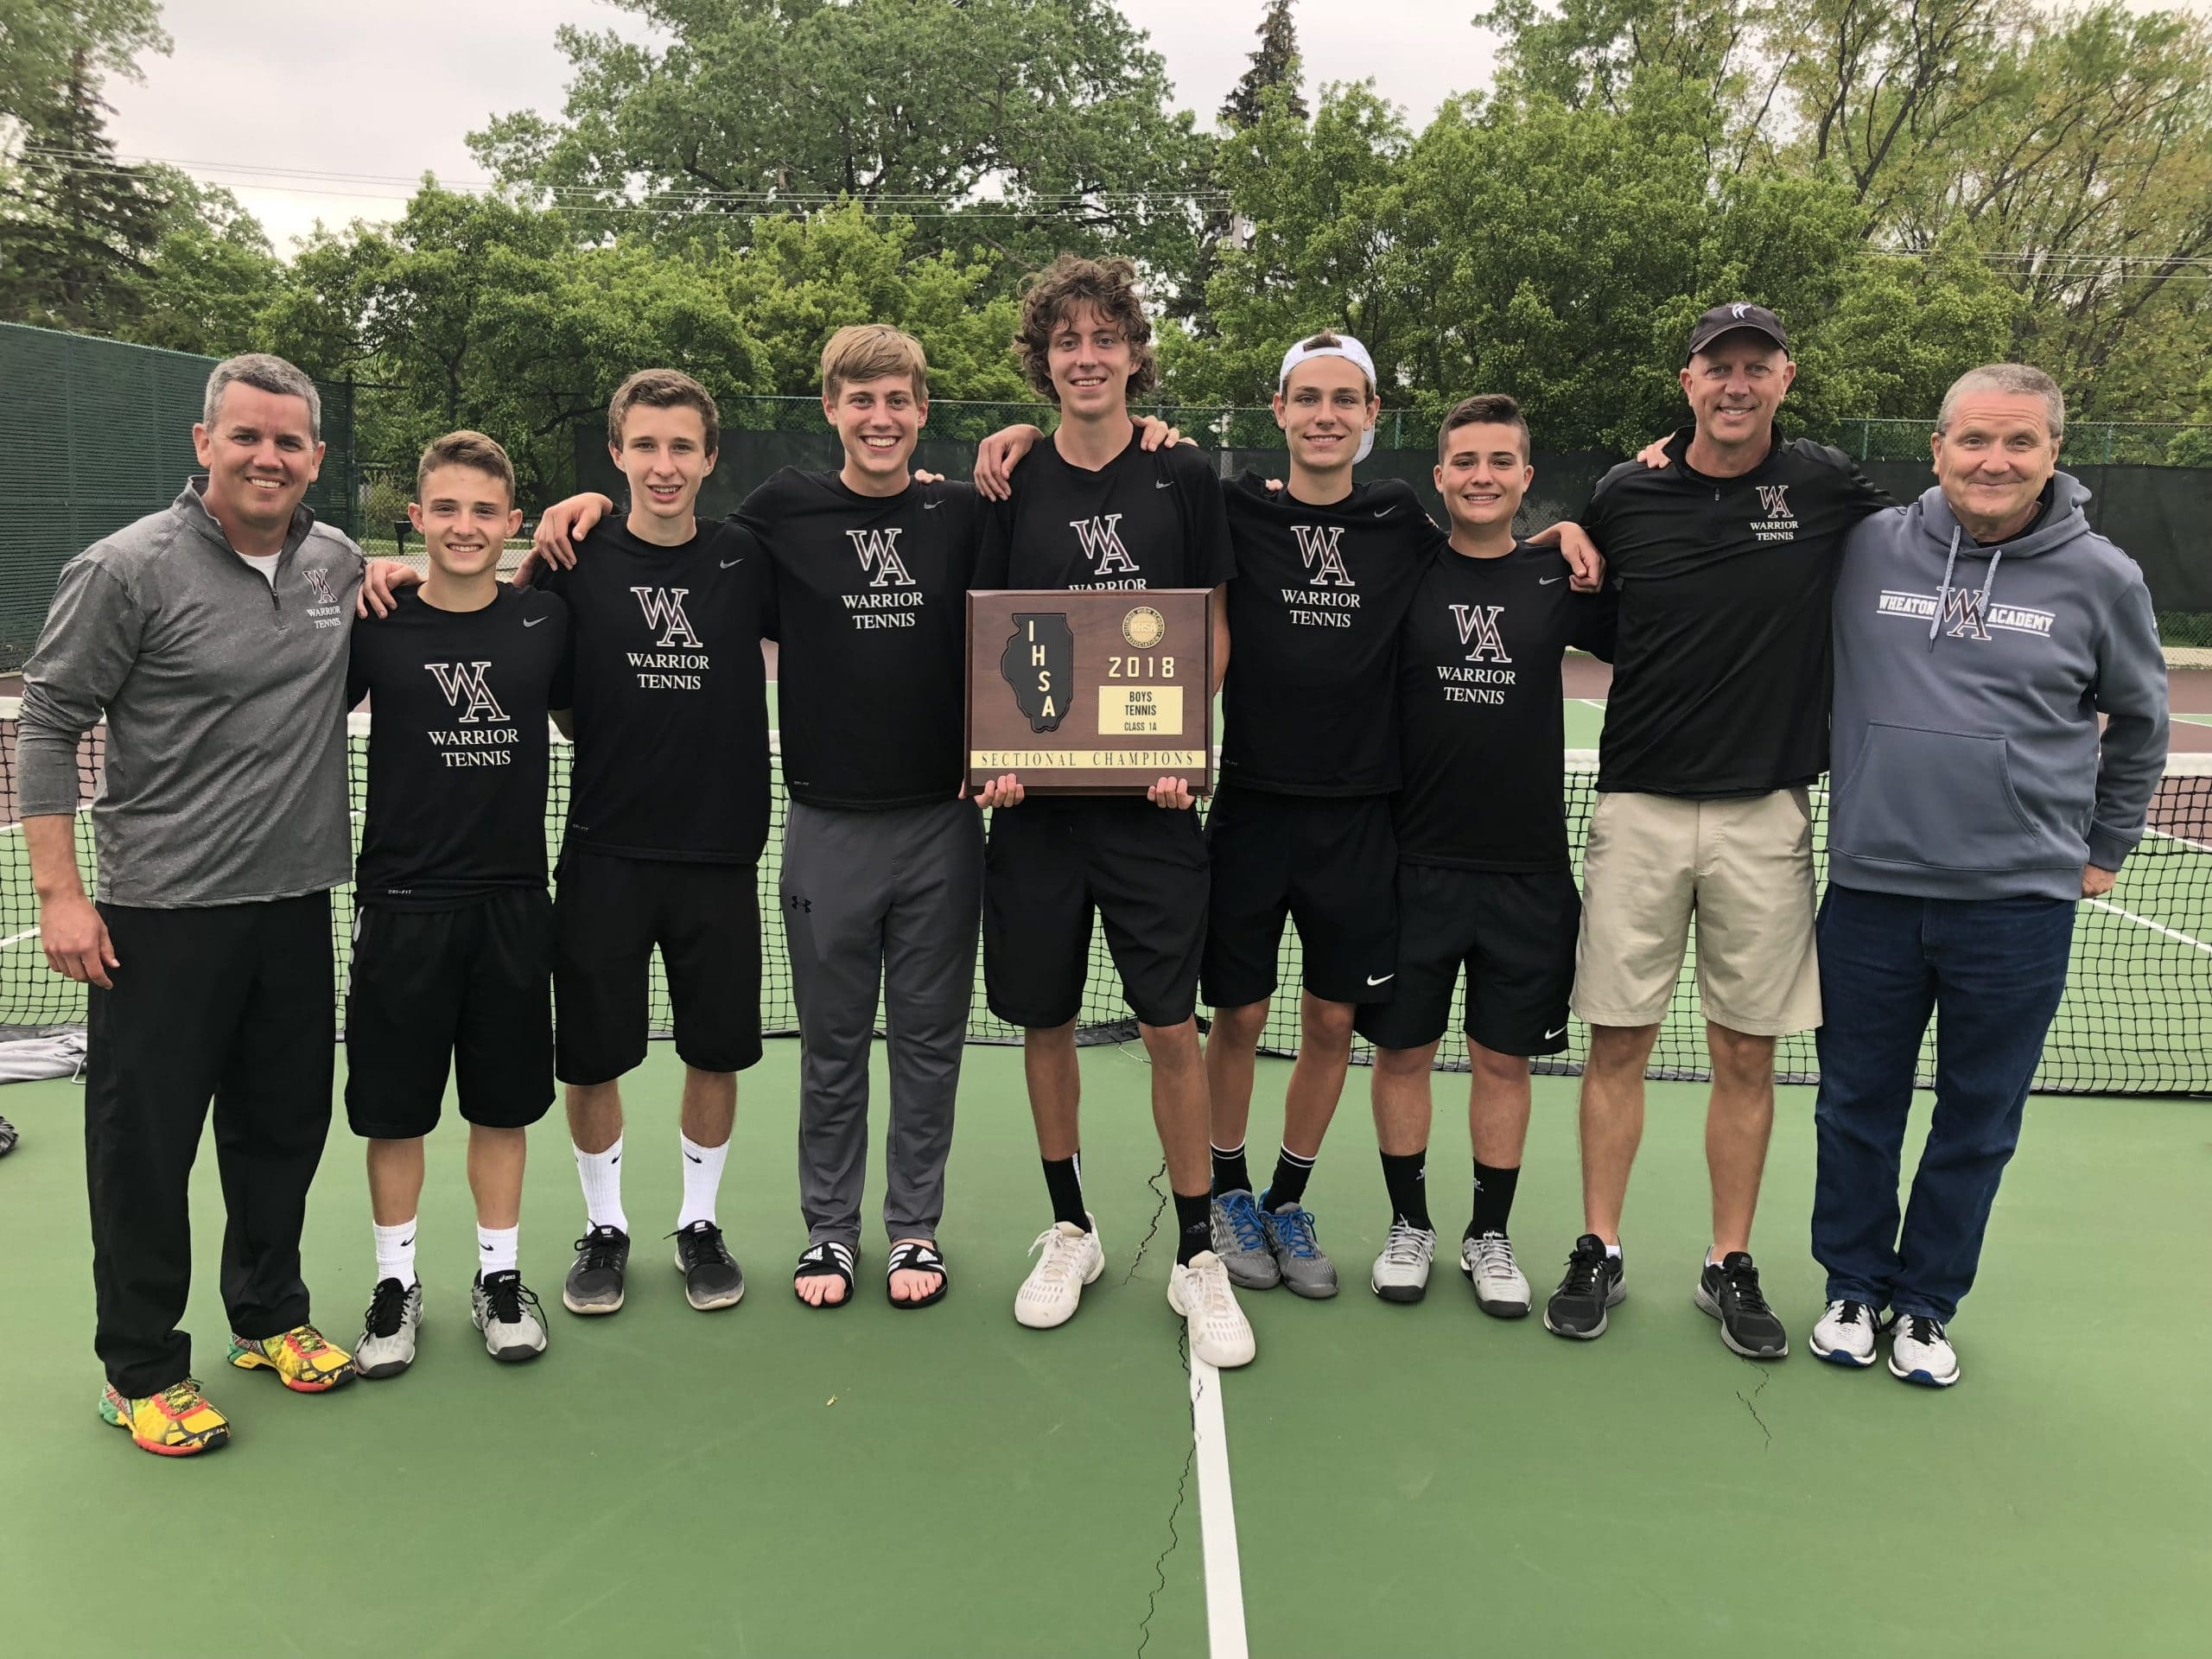 WA Boys Tennis Writes Final Chapter of Storybook Season with Top 4 Finish at State!